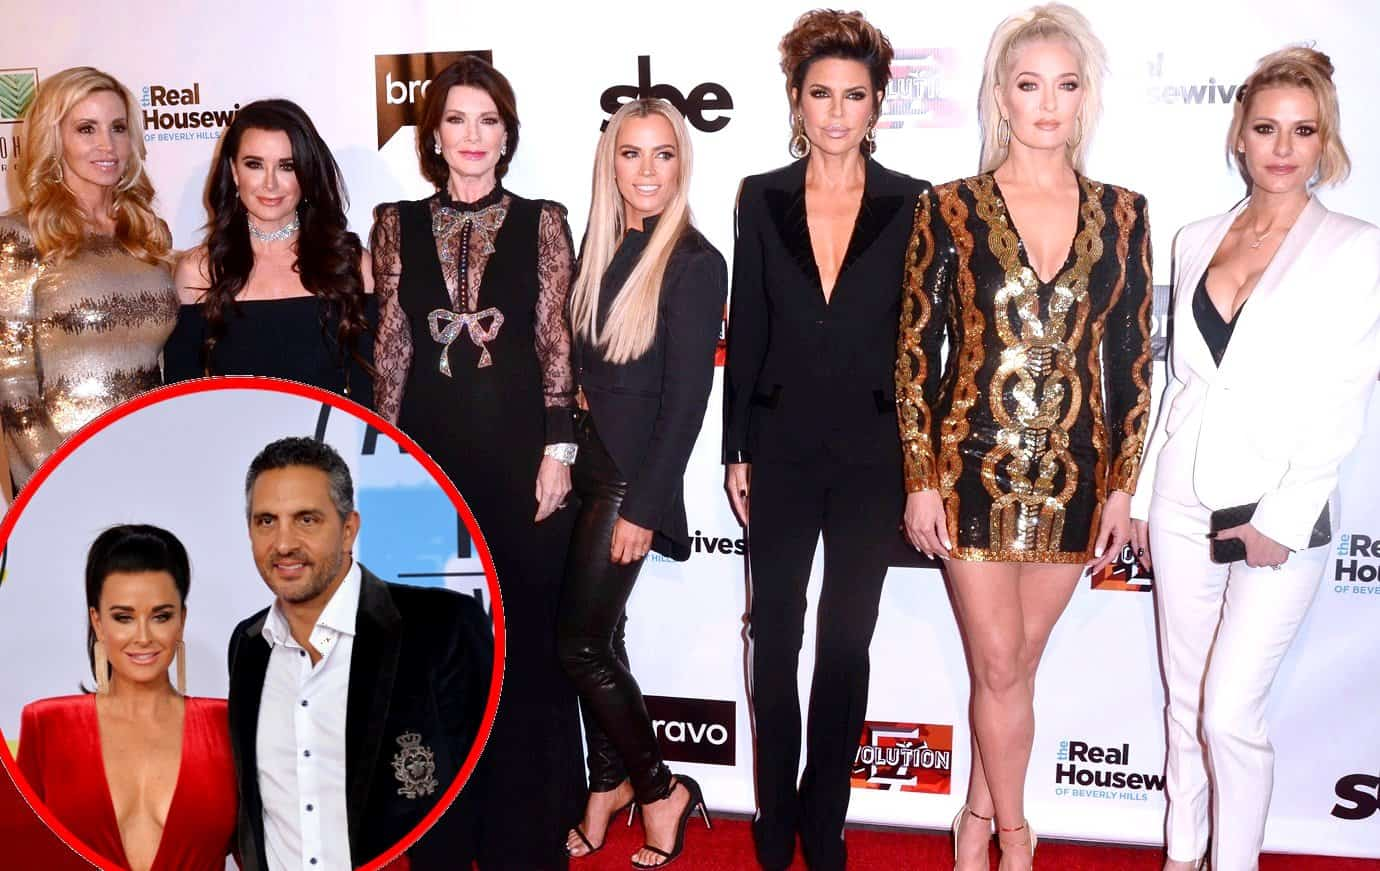 The RHOBH Cast Gets Dragged Into $32 Million Lawsuit Against Kyle Richards' Husband Mauricio Umansky